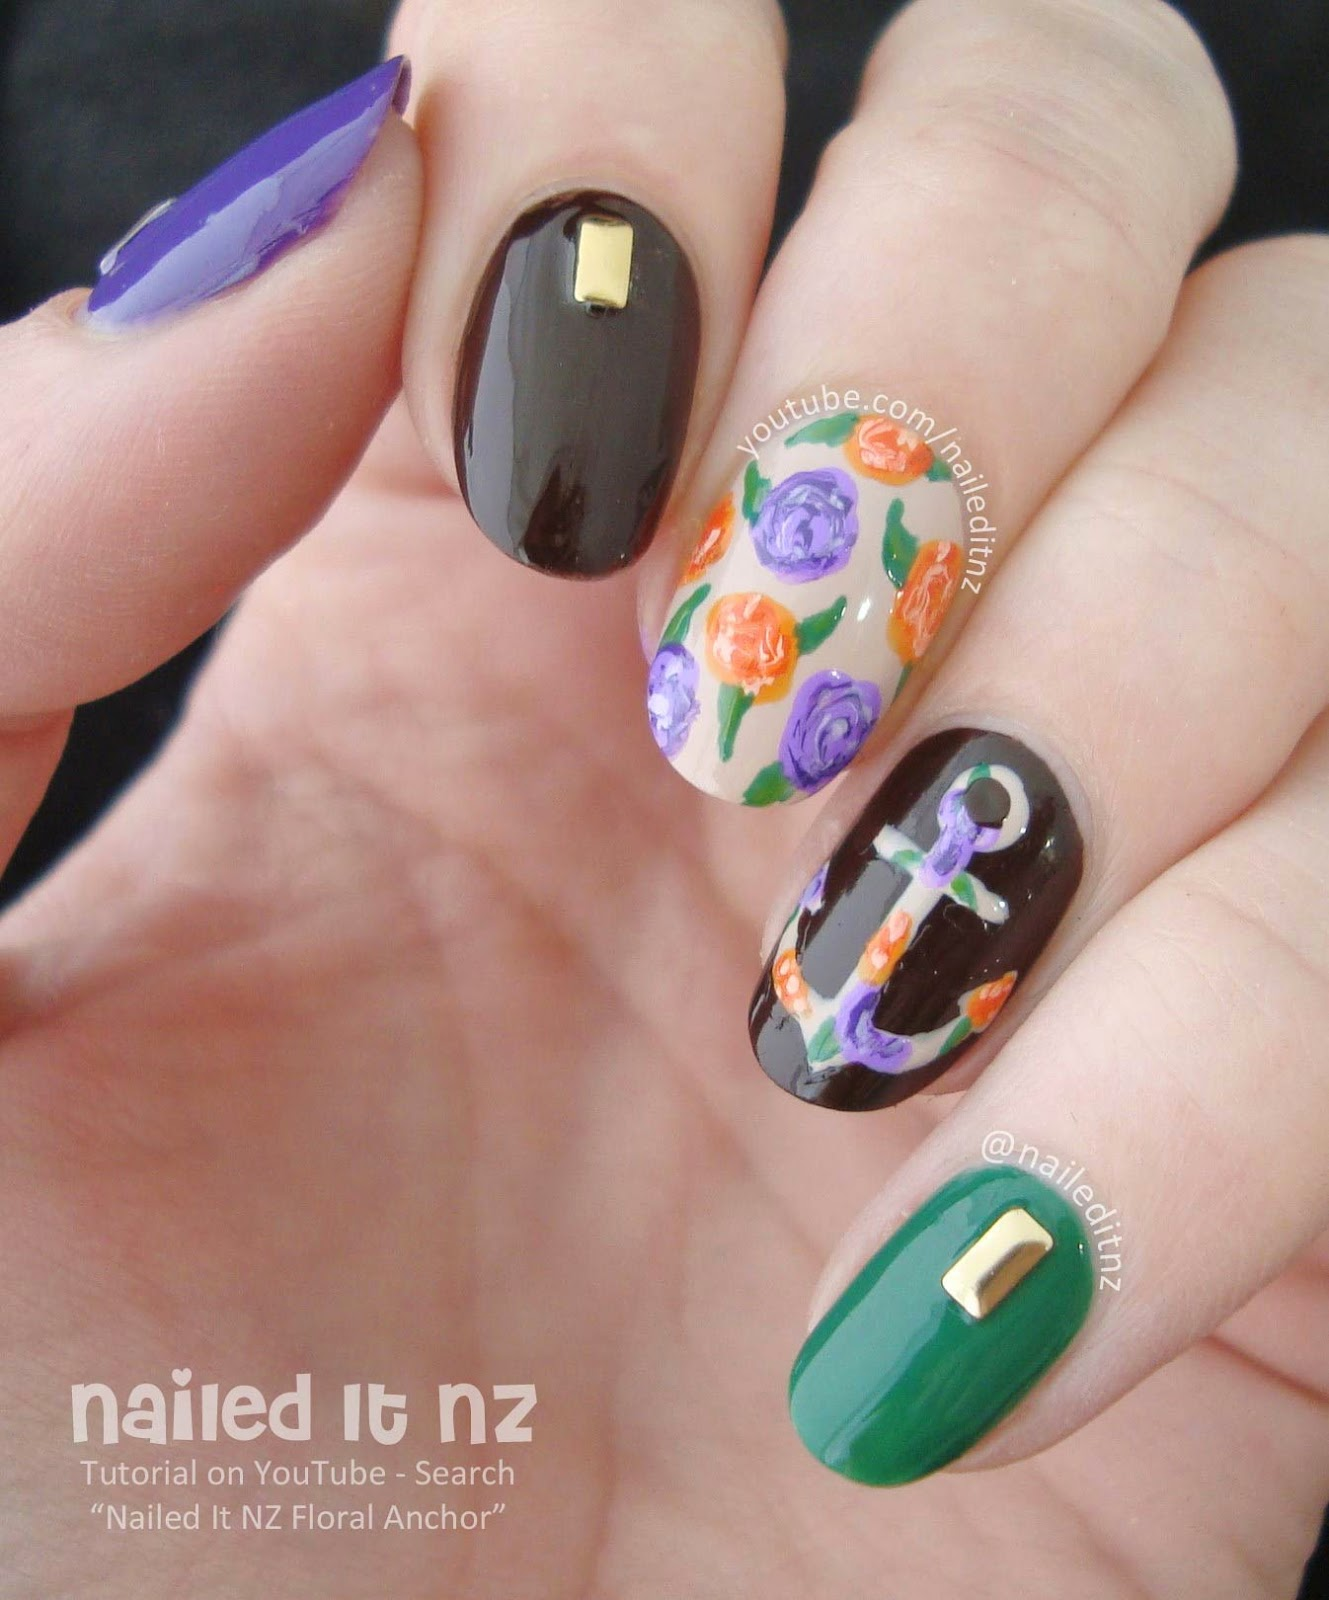 Floral anchor nail art tutorial let me know what you think of these nails and ill talk to you again in a couple of days ive got some nail art based on a chocolate milk obsession prinsesfo Gallery